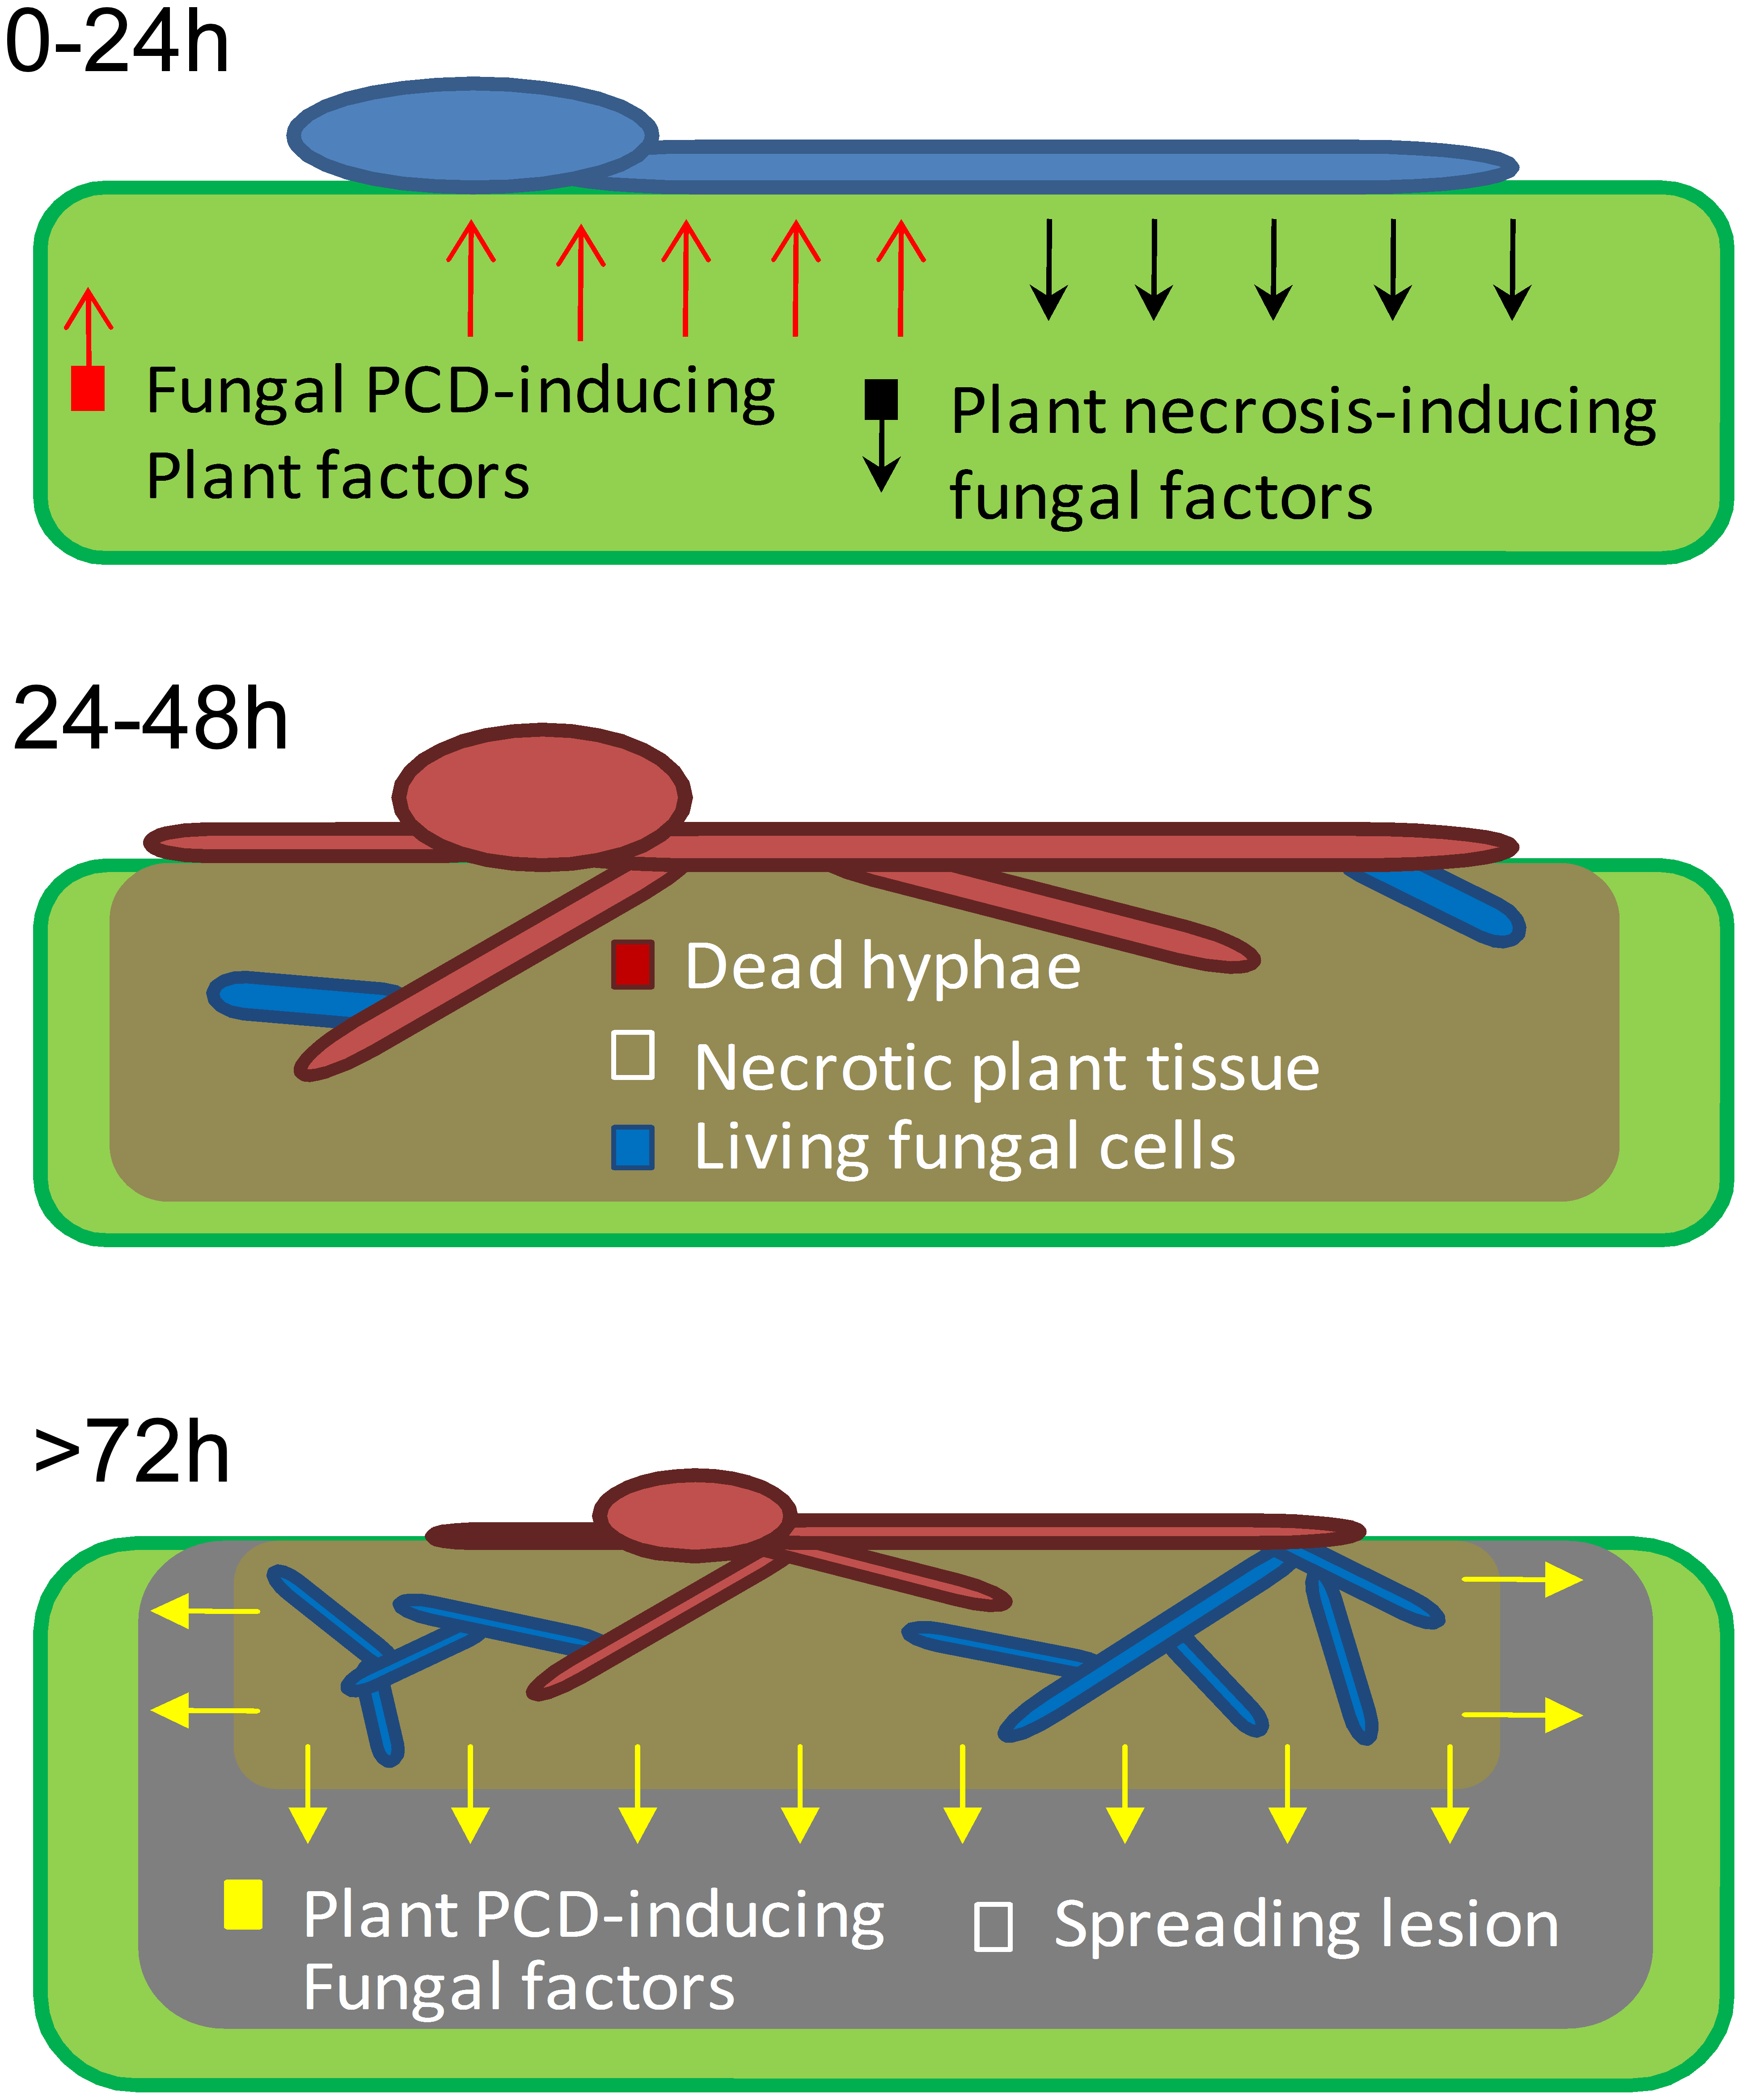 A model showing the role of PCD in early events of <i>B. cinerea</i> infection.